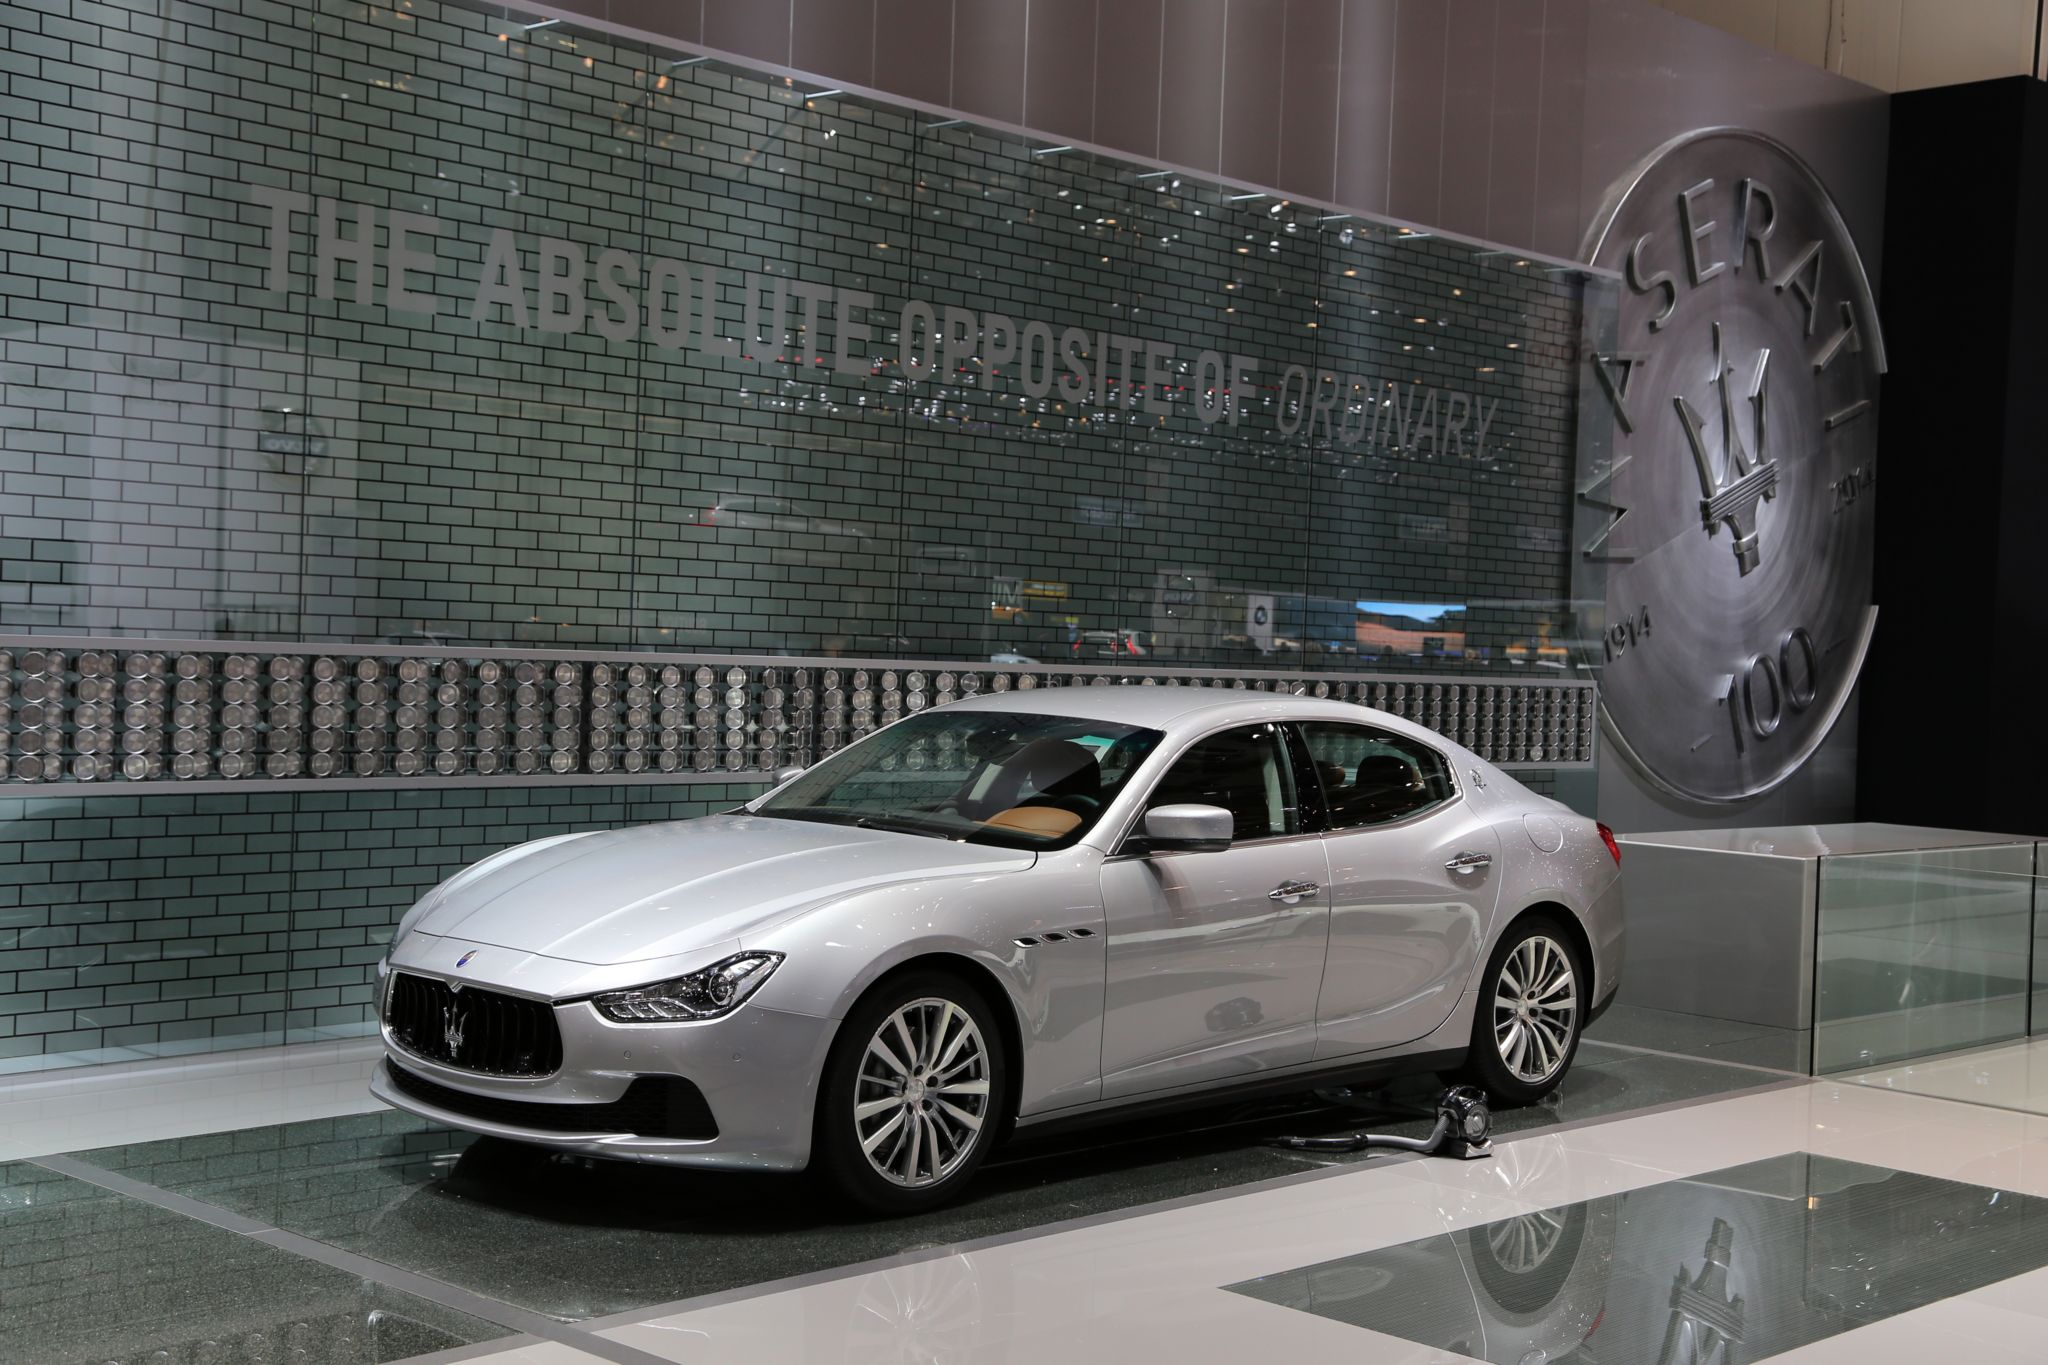 A Maserati Quattroporte on display in Geneva in 2014